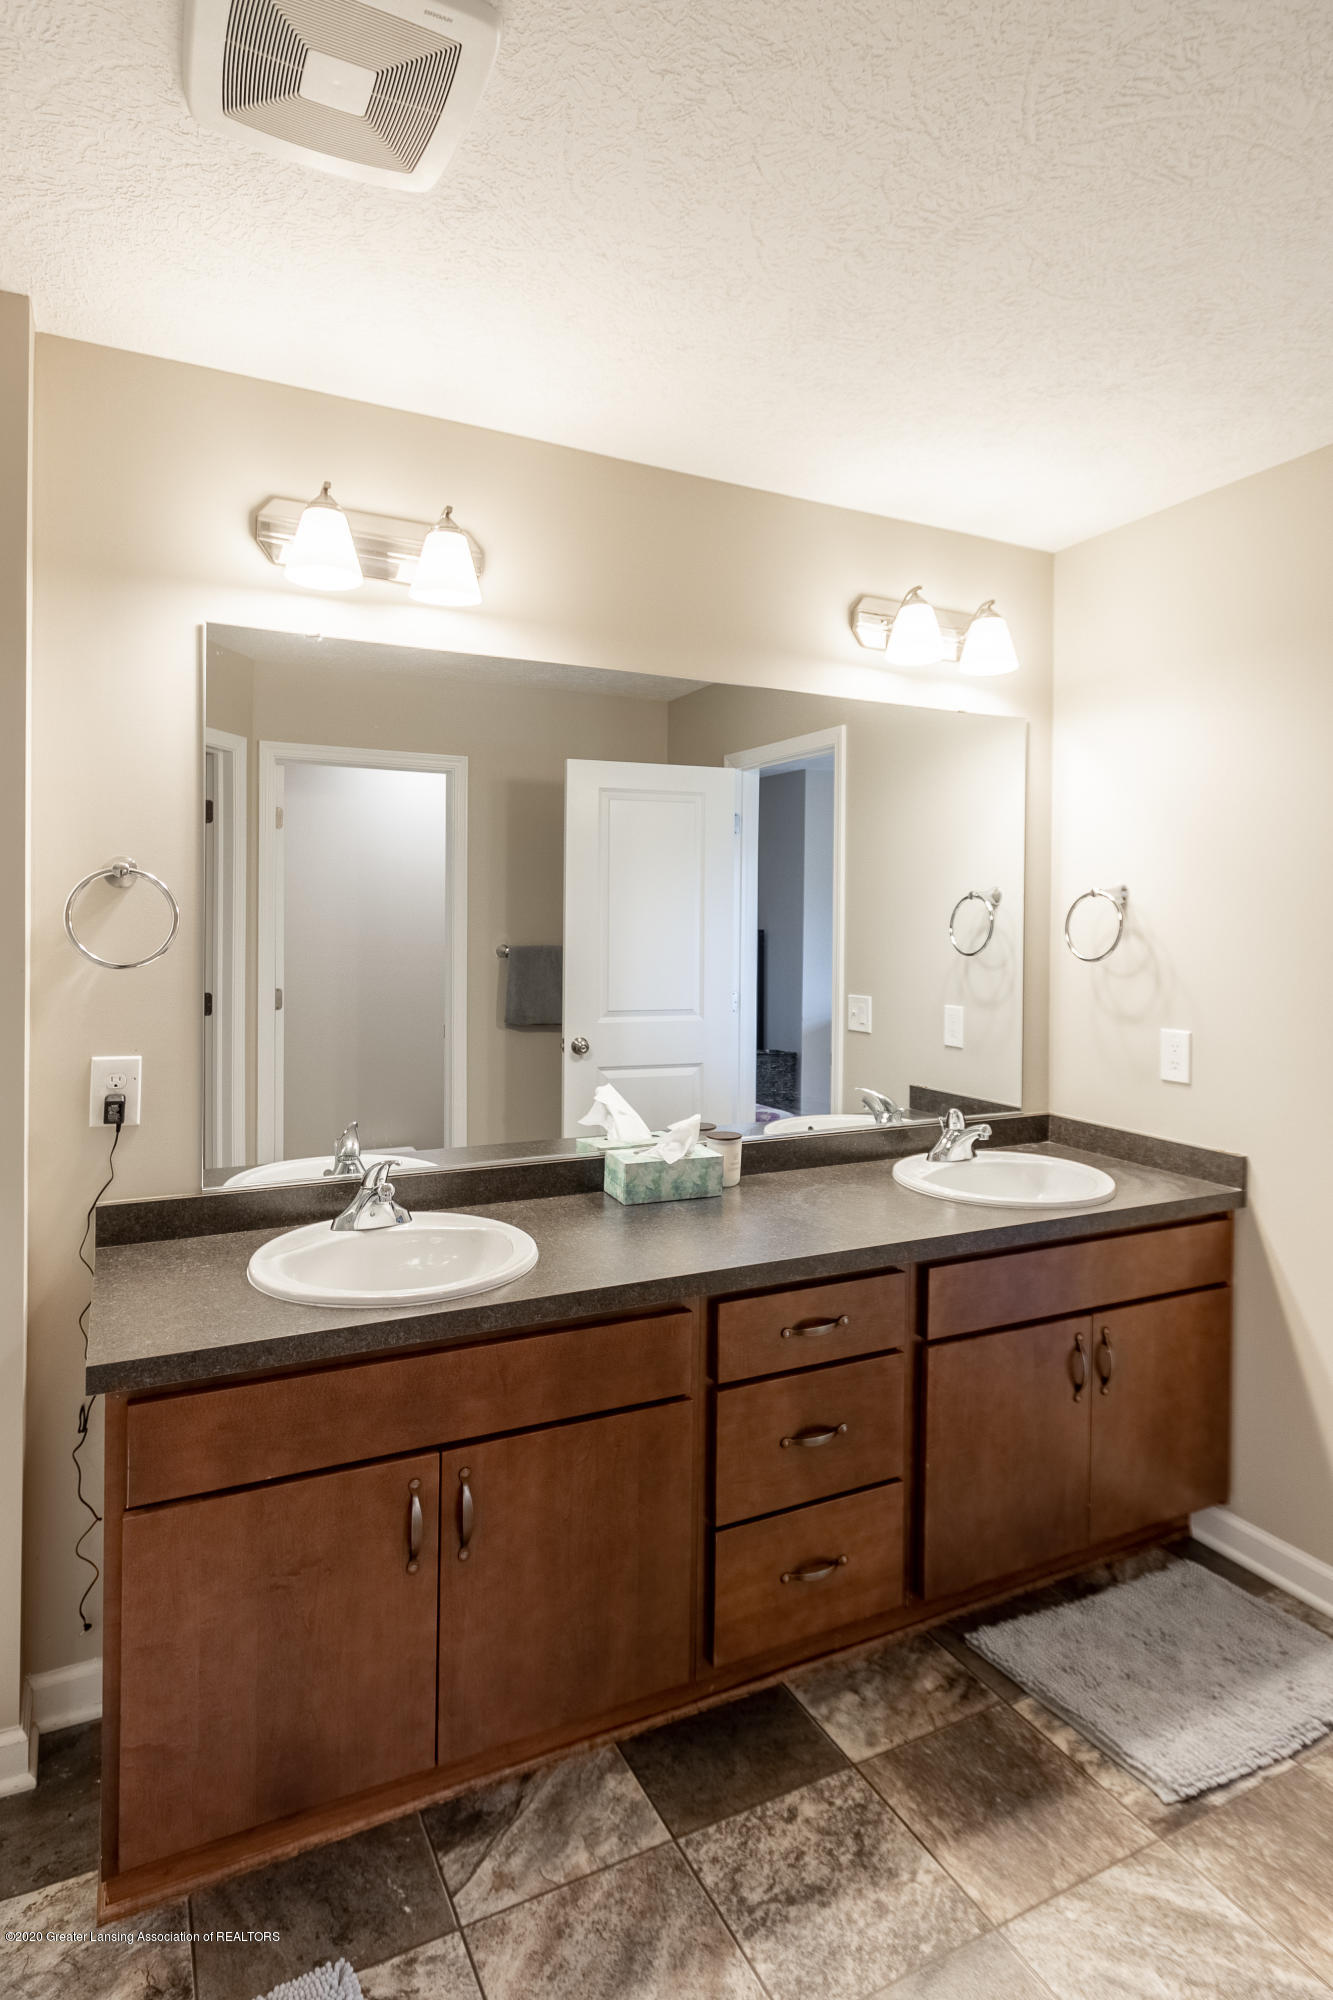 3758 Shearwater Ln - Master bathroom - 30